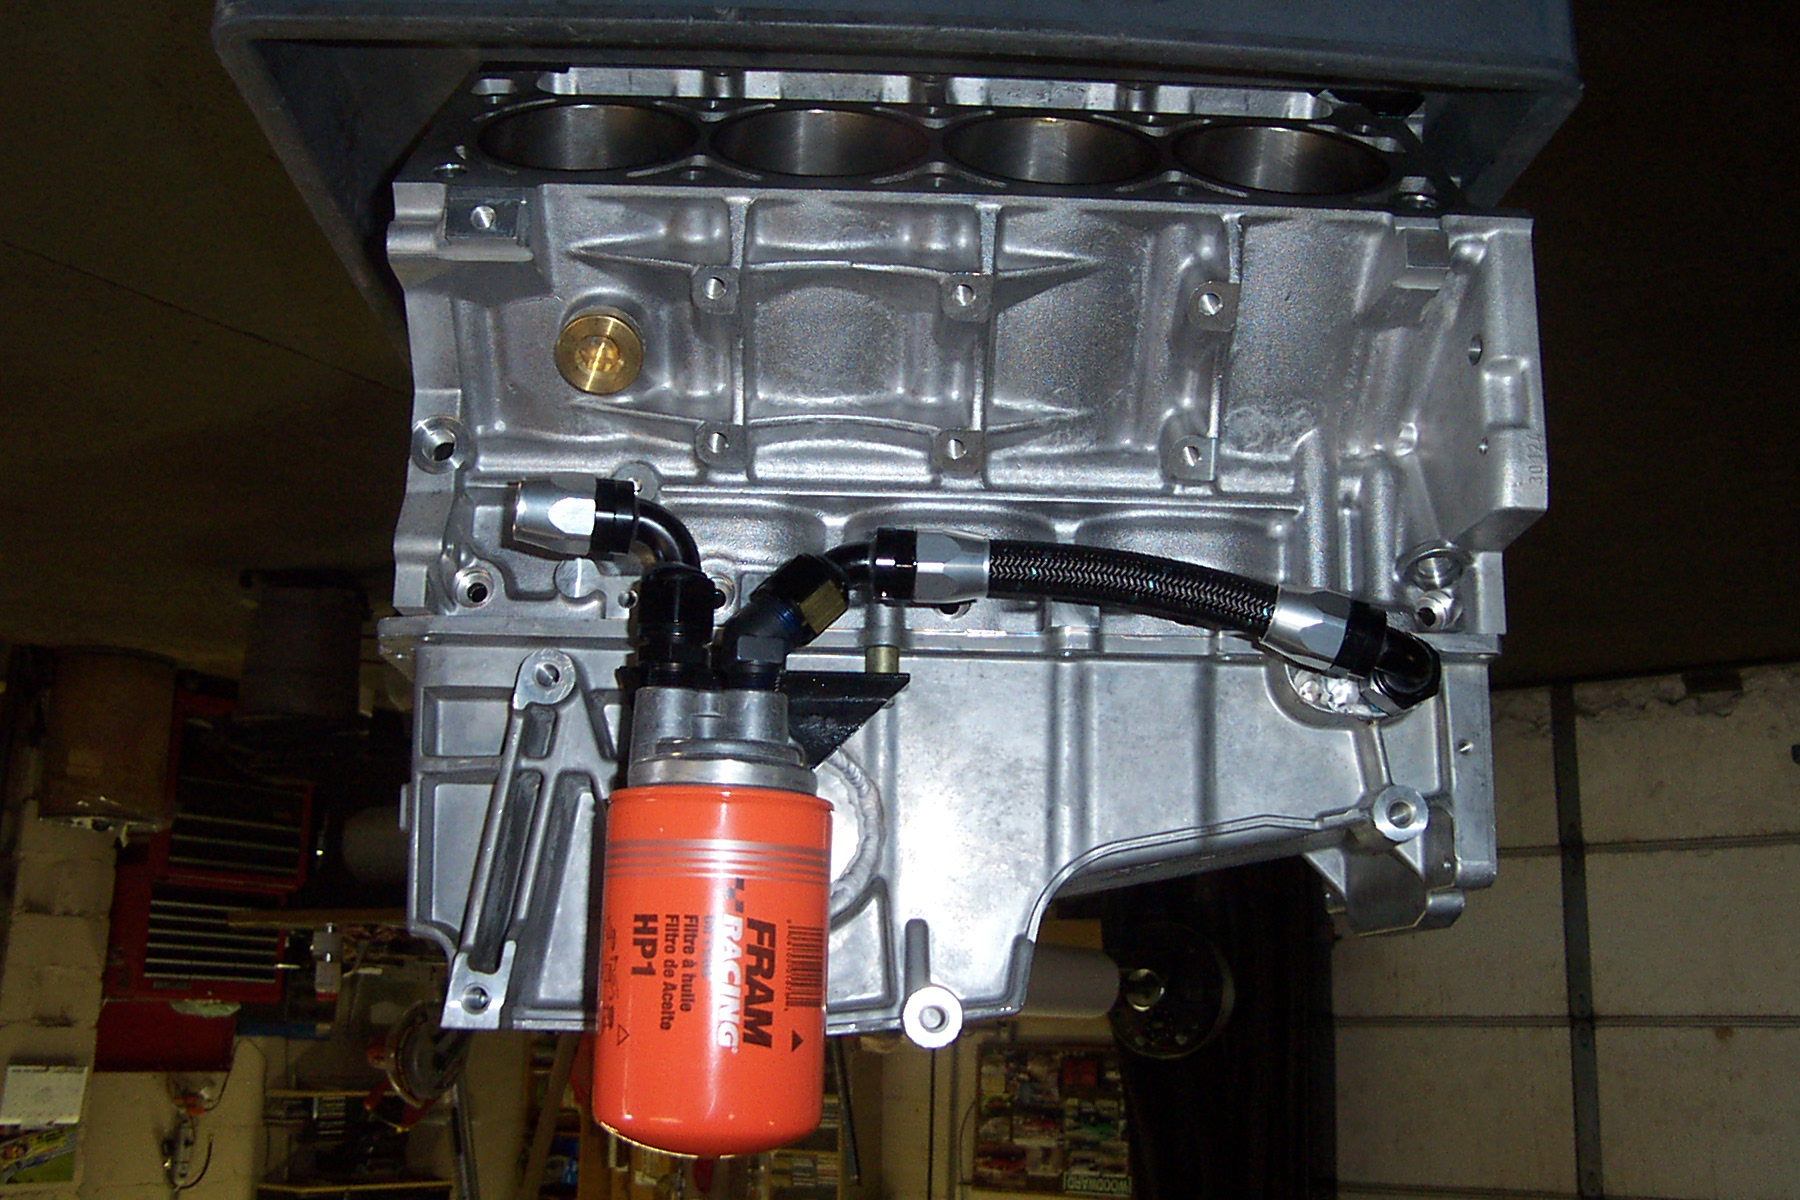 Oil Pan Modifications-dcp_2573.jpg